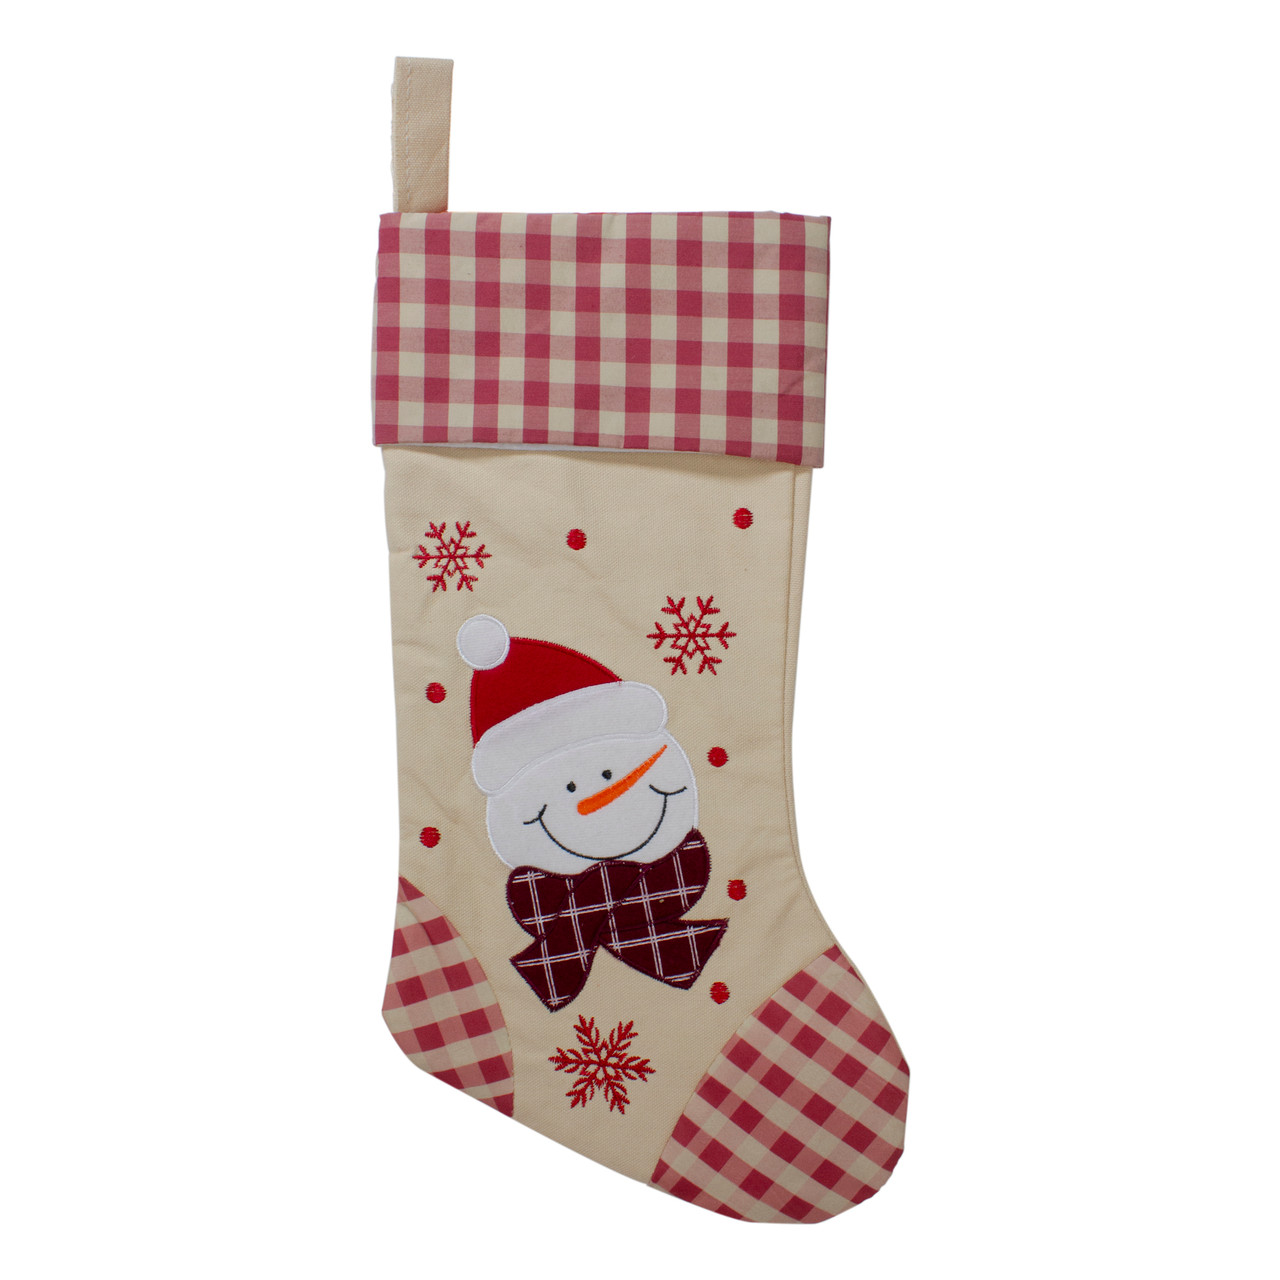 17 burlap embroidered snowman christmas stocking with red gingham cuff 32585048 - Embroidered Christmas Stocking